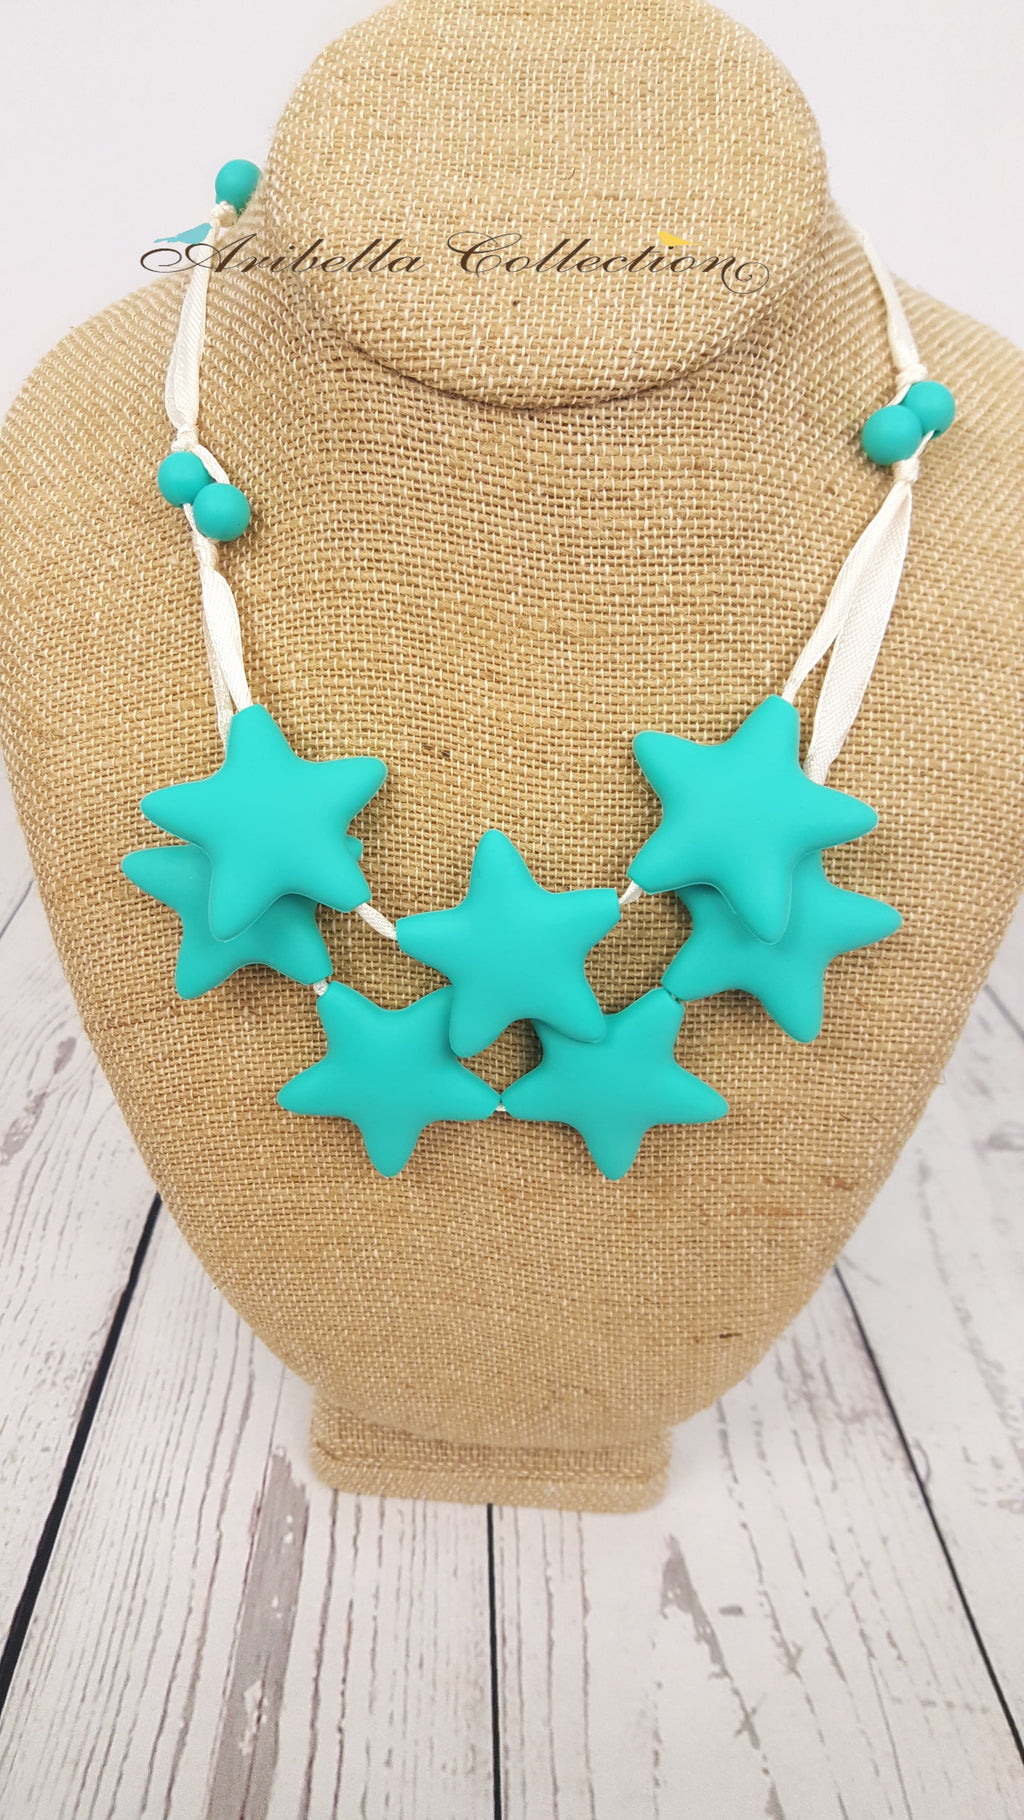 Silicone Necklace - 7 Turquoise Star - Aribella Collection